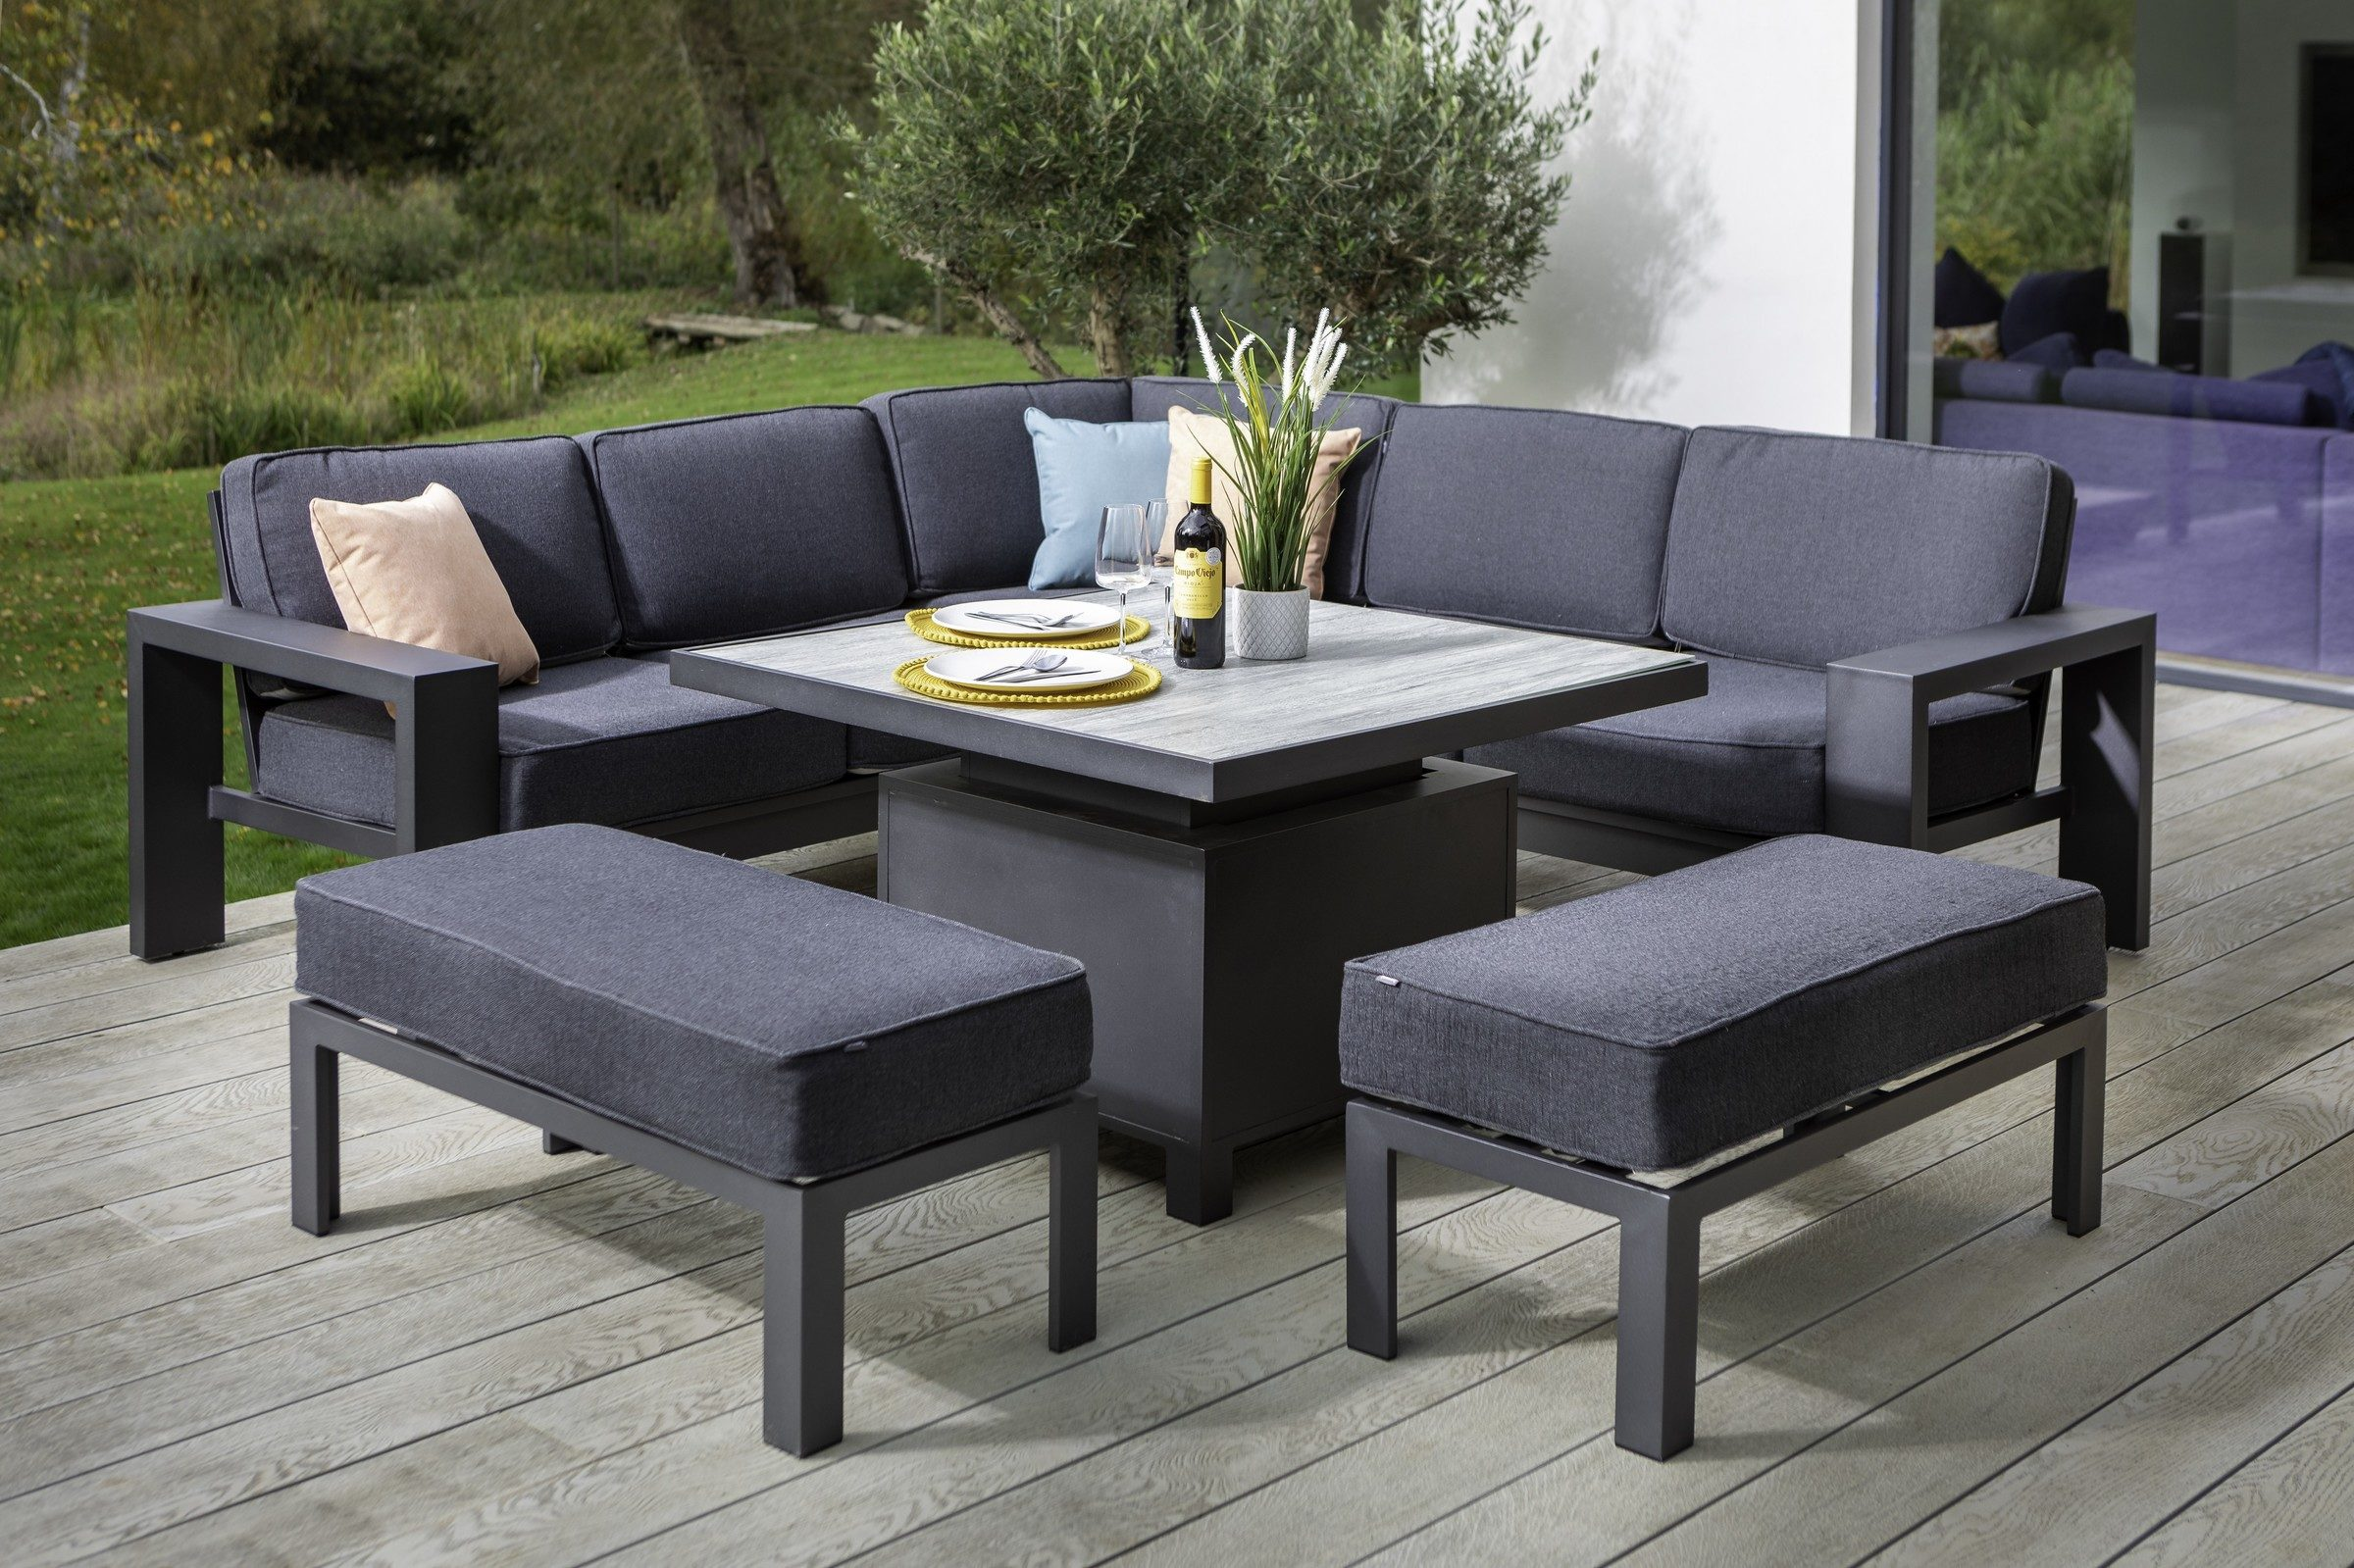 Titan Sqaure Casual Dining Set With Adjustable Table 01